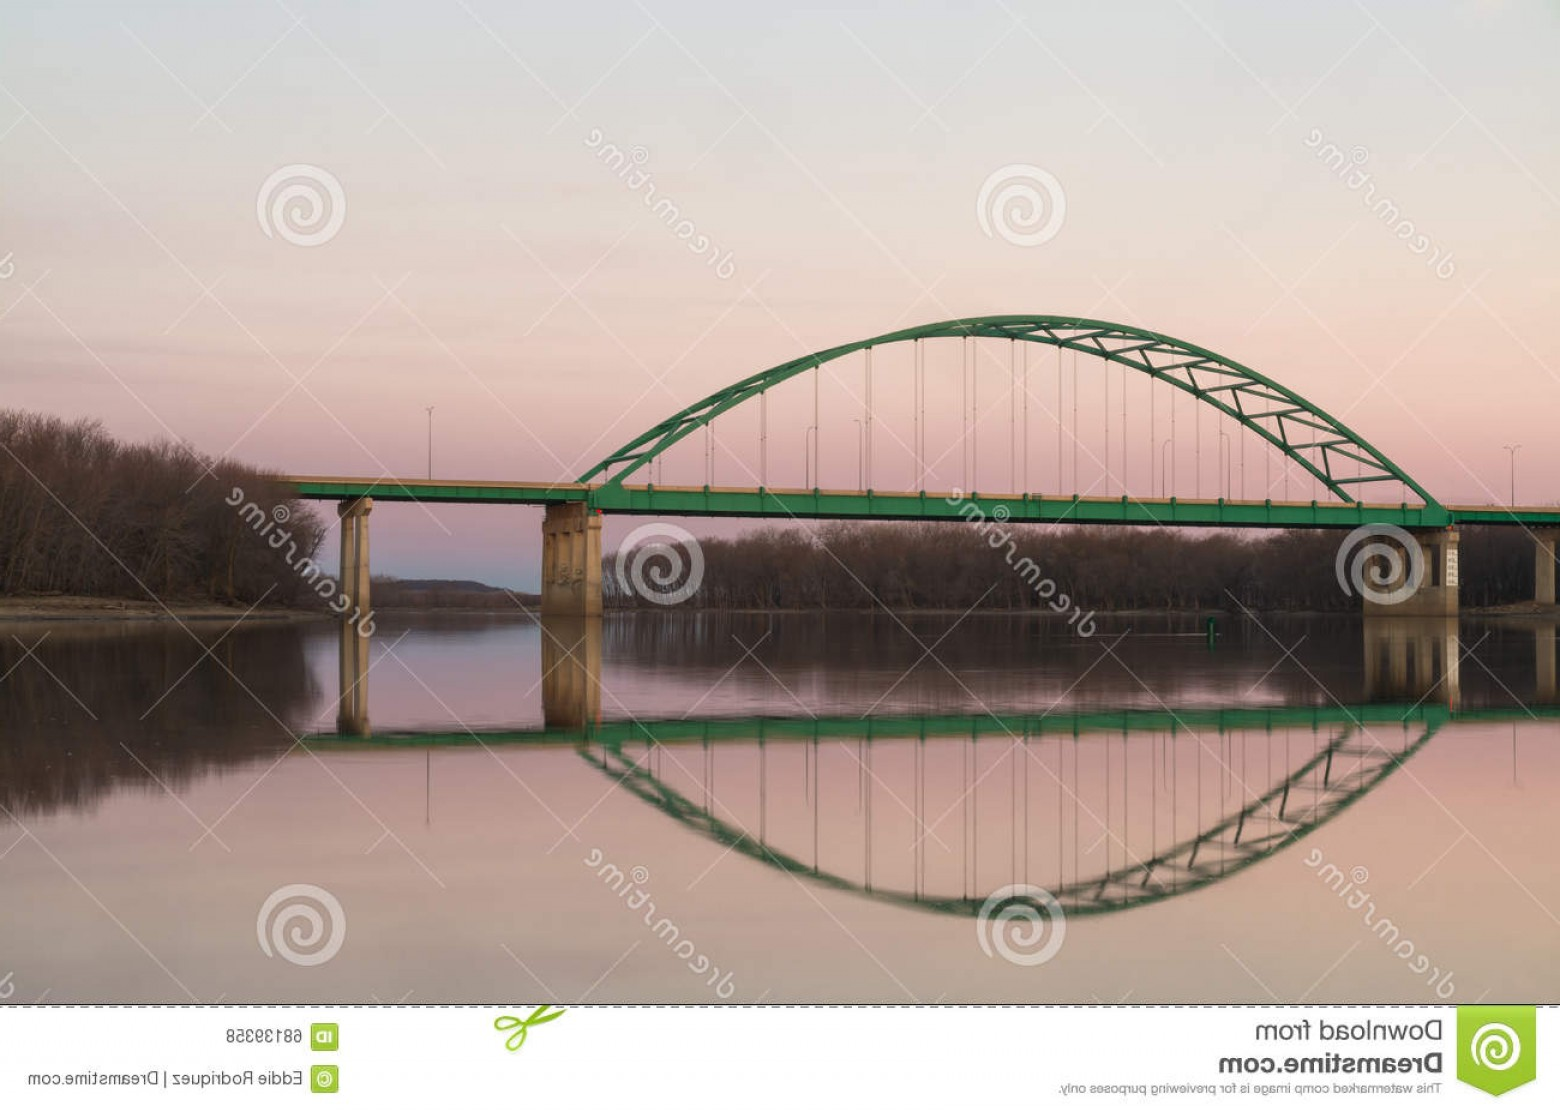 Arch Vector Illinios: Stock Photo Lincoln Memorial Bridge Illinois Abraham Stretching Over River As Sun Gently Sets Lasalle U S Image